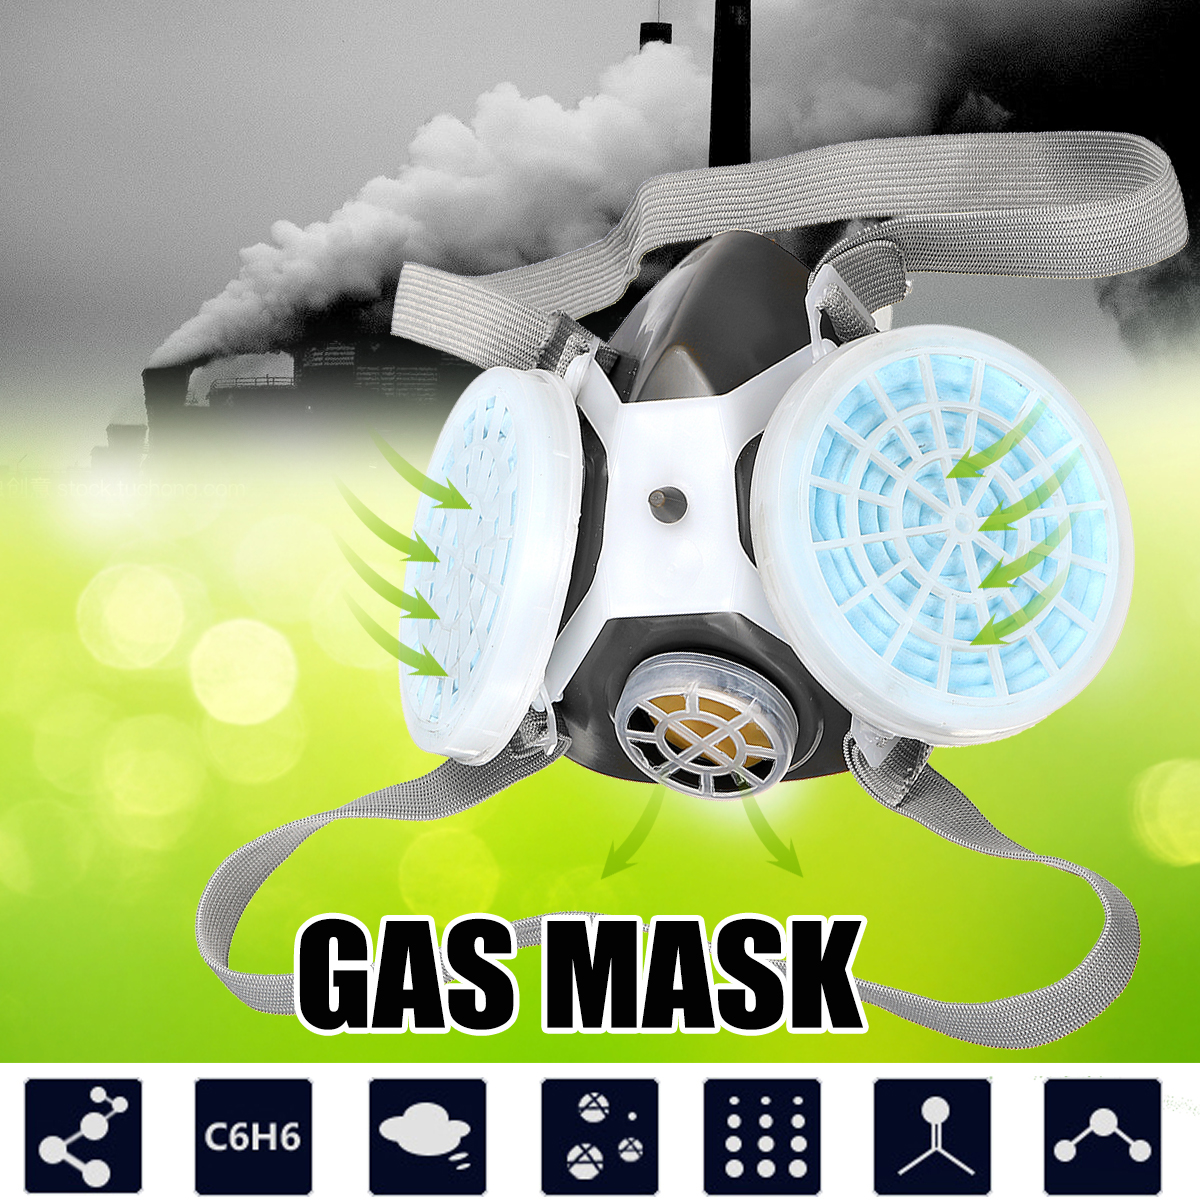 Safety Protective Gas Mask Half Face Painting Spraying Industrial Filter Anti-Dust Mask Respirator Workplace Safety Supplies safety respiratory gas mask half face filter anti dust smoke protective mask for painting spraying industrial pesticide chemical